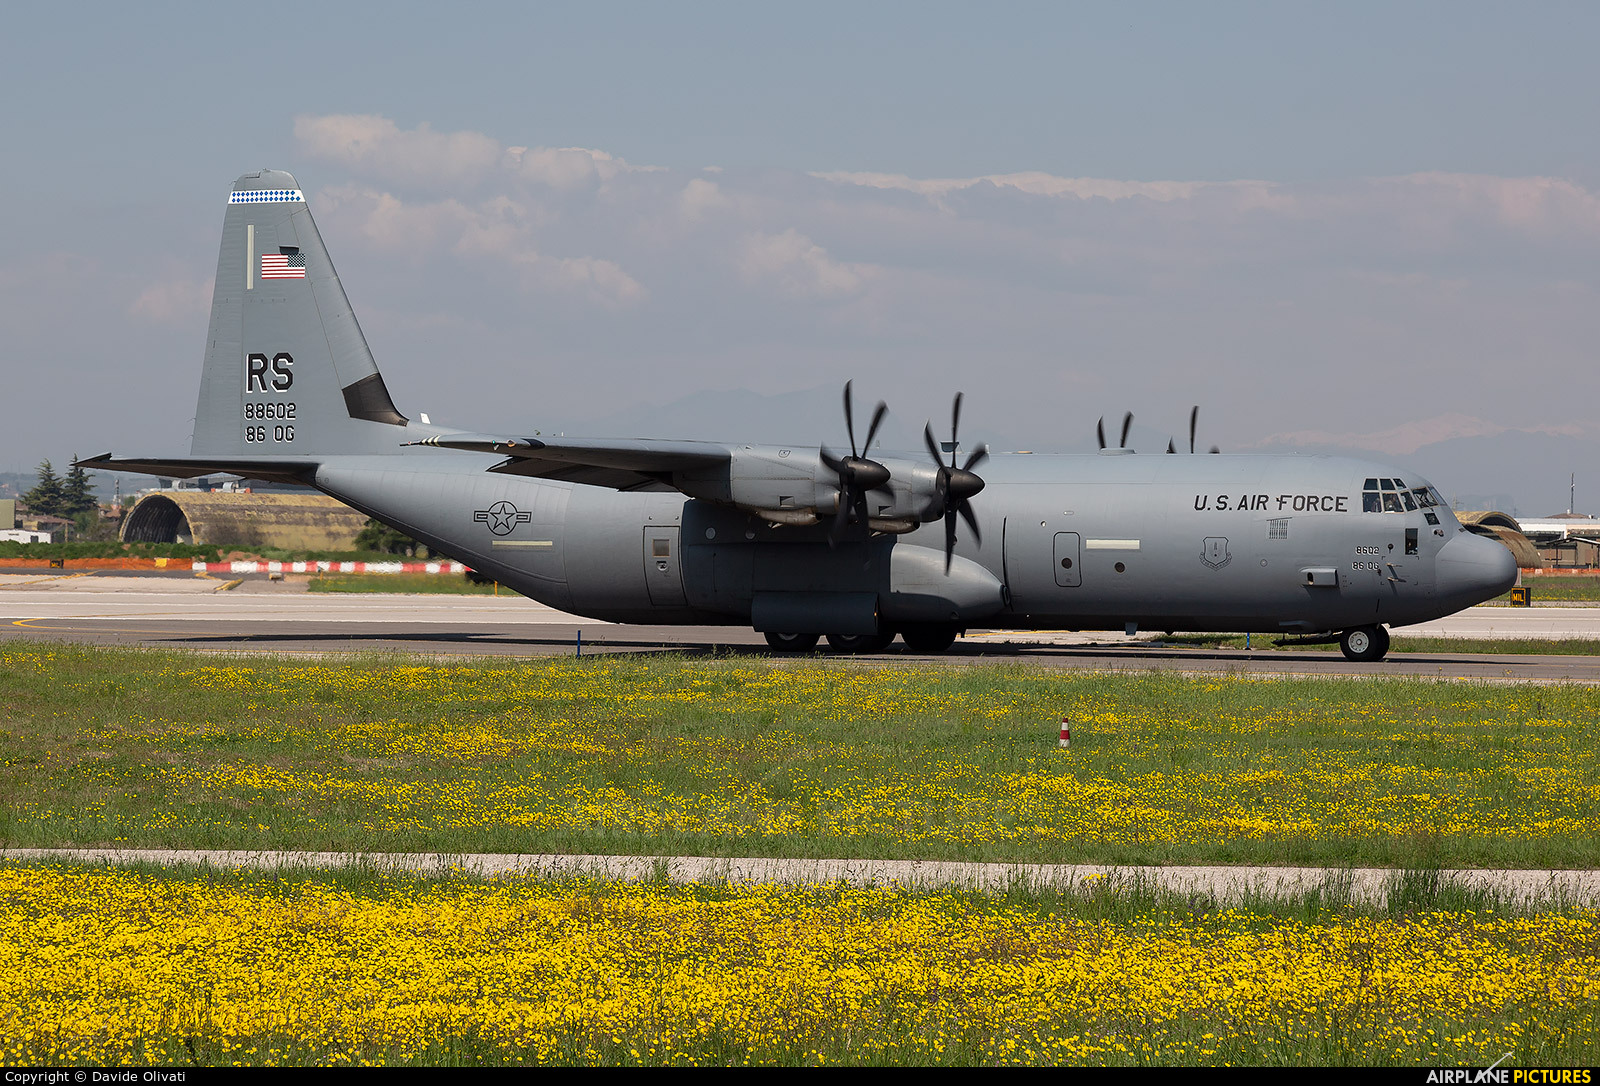 USA - Air Force 08-8602 aircraft at Verona - Villafranca